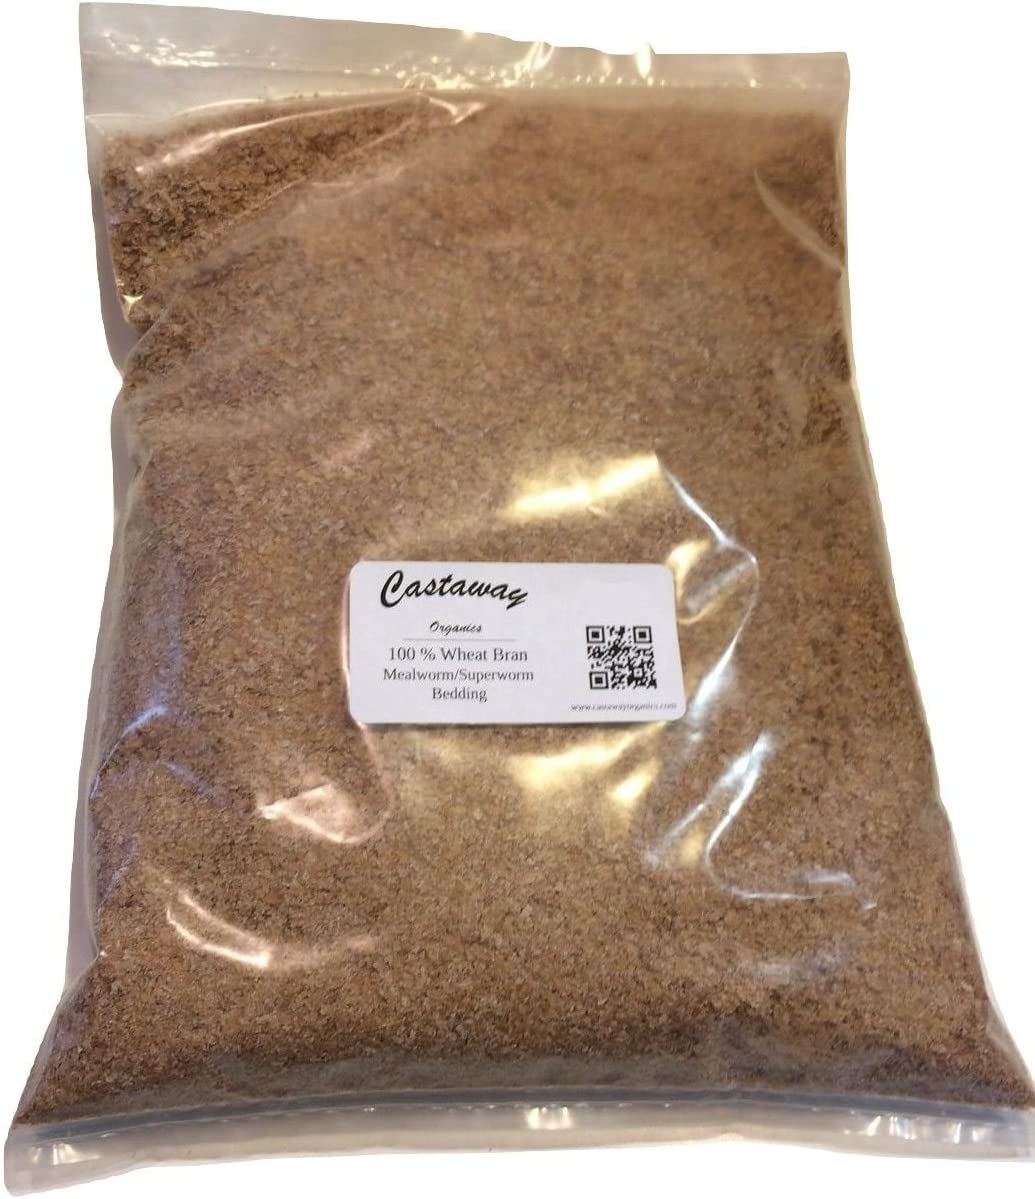 Castaway Organics Wheat Bran with Insecta-Load Gut Load for Mealworms Superworms (3 lbs)